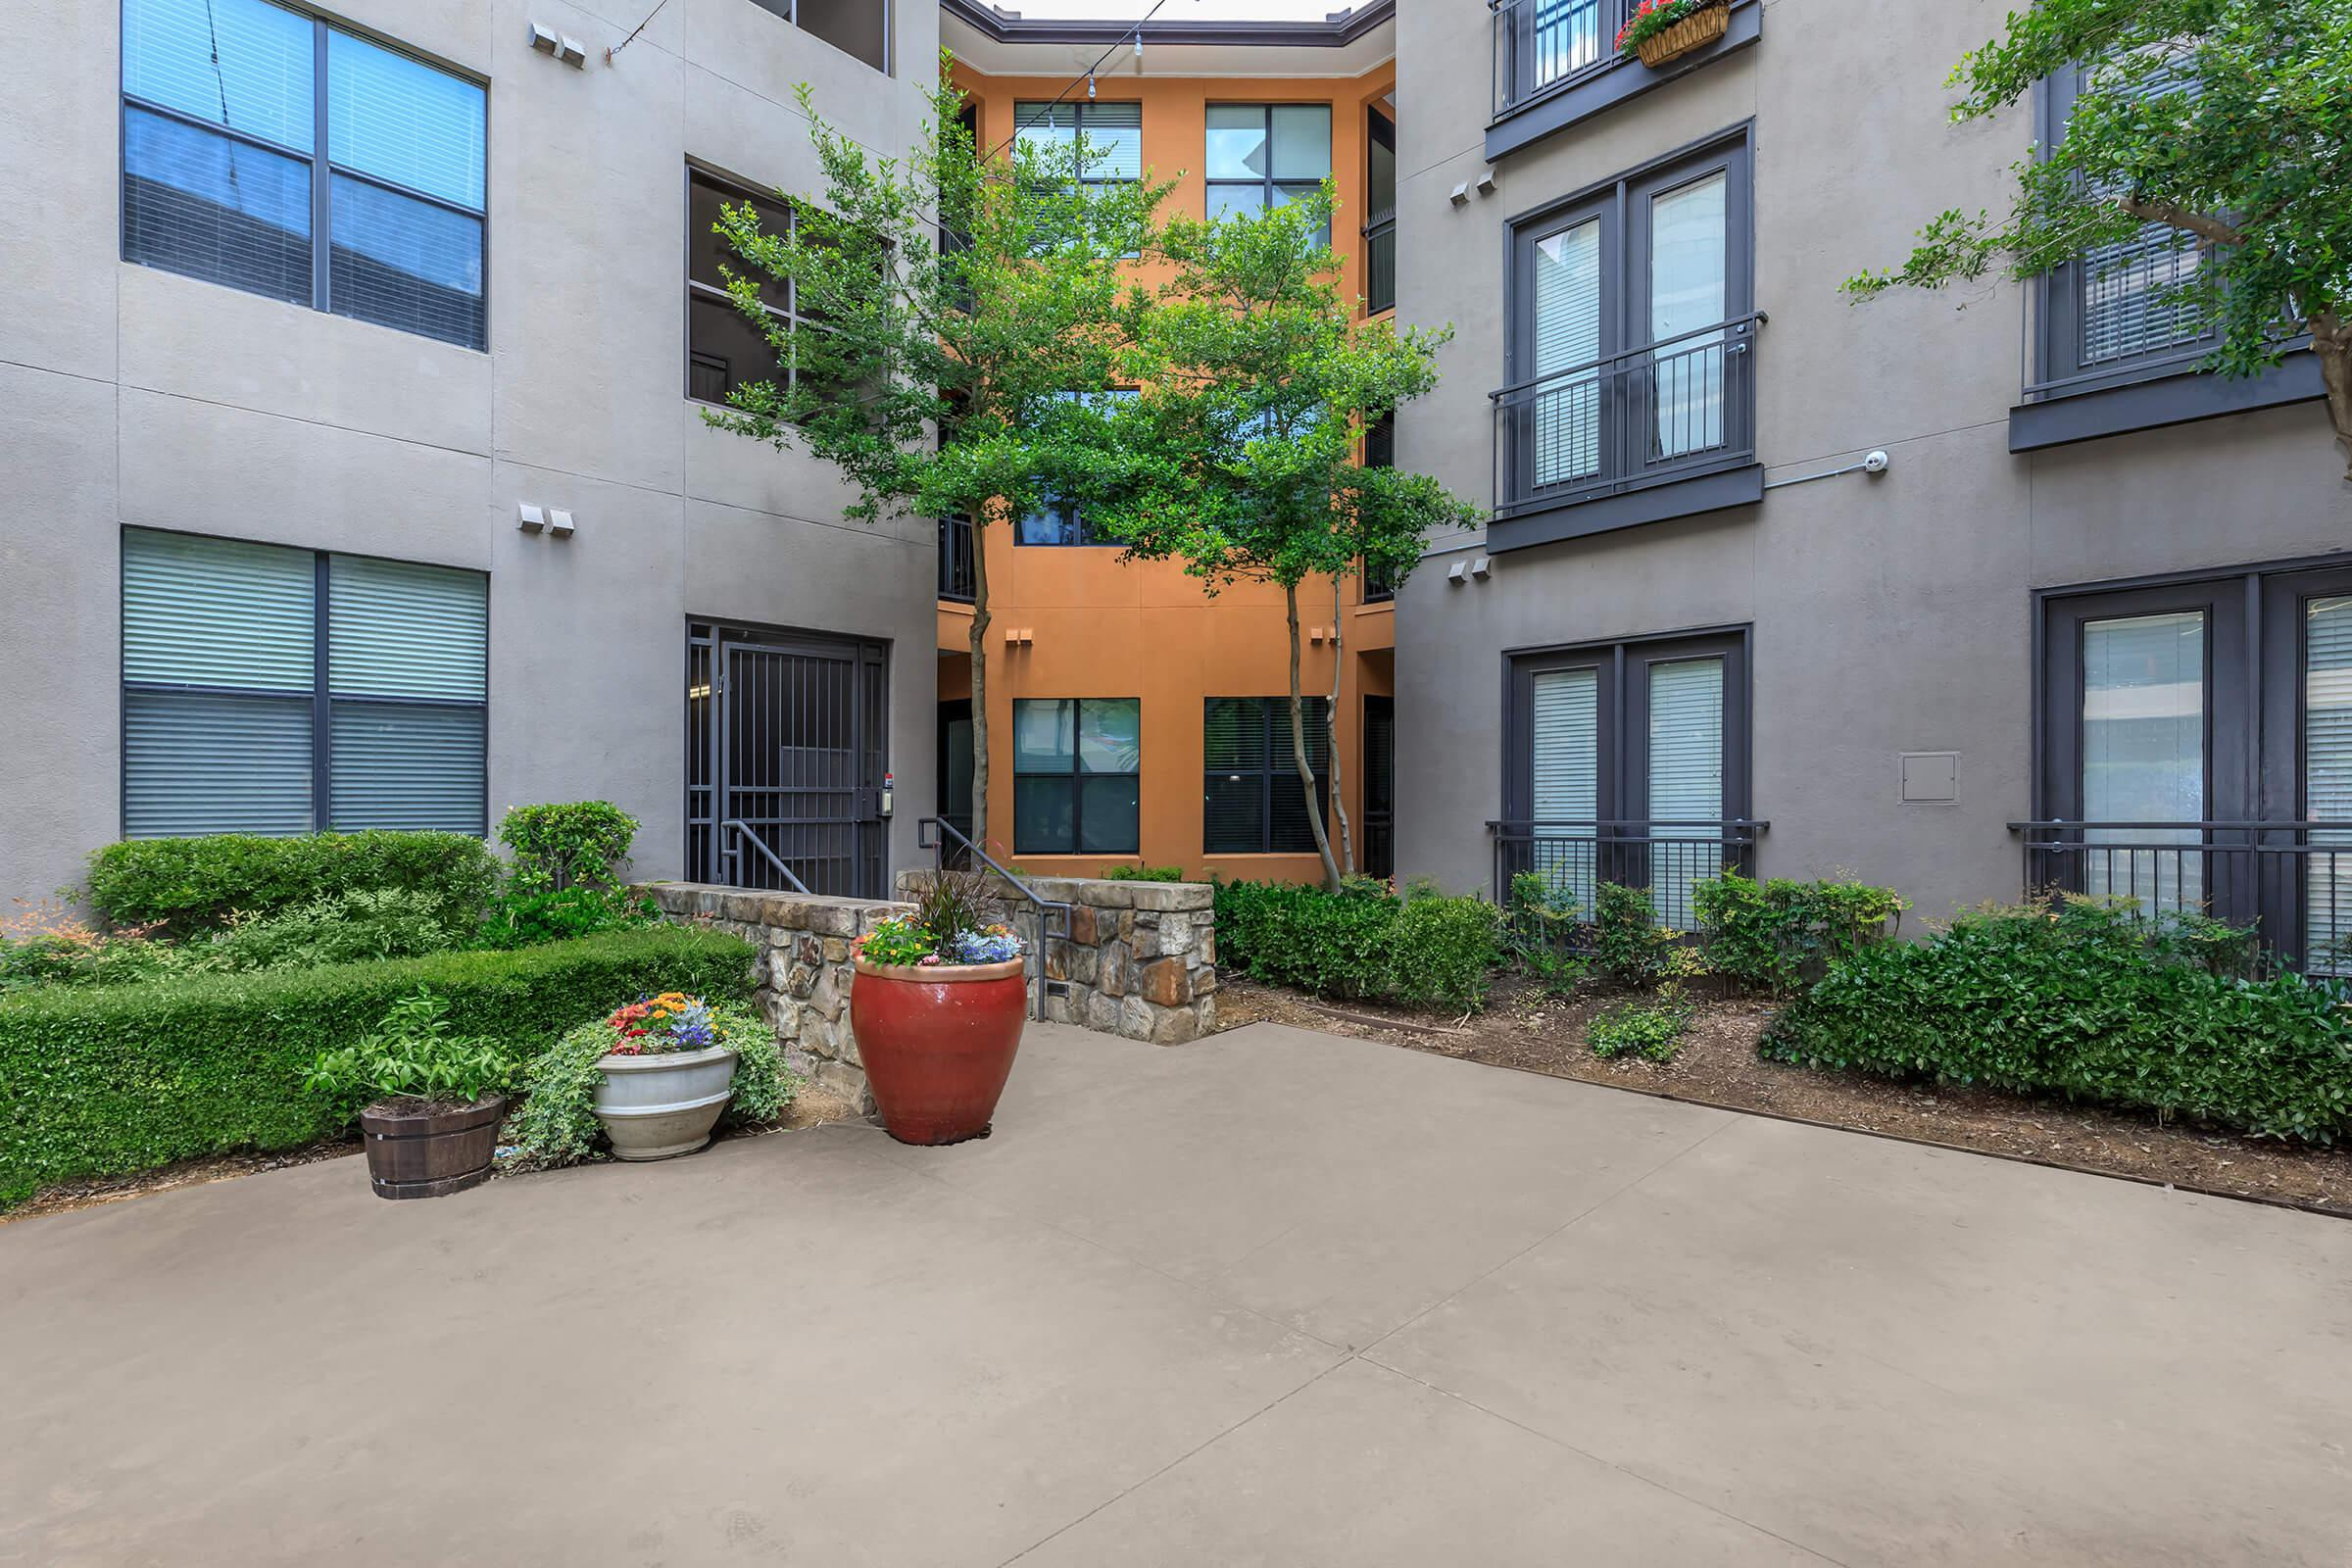 Apartments Near DTS Vue Fitzhugh for Dallas Theological Seminary Students in Dallas, TX